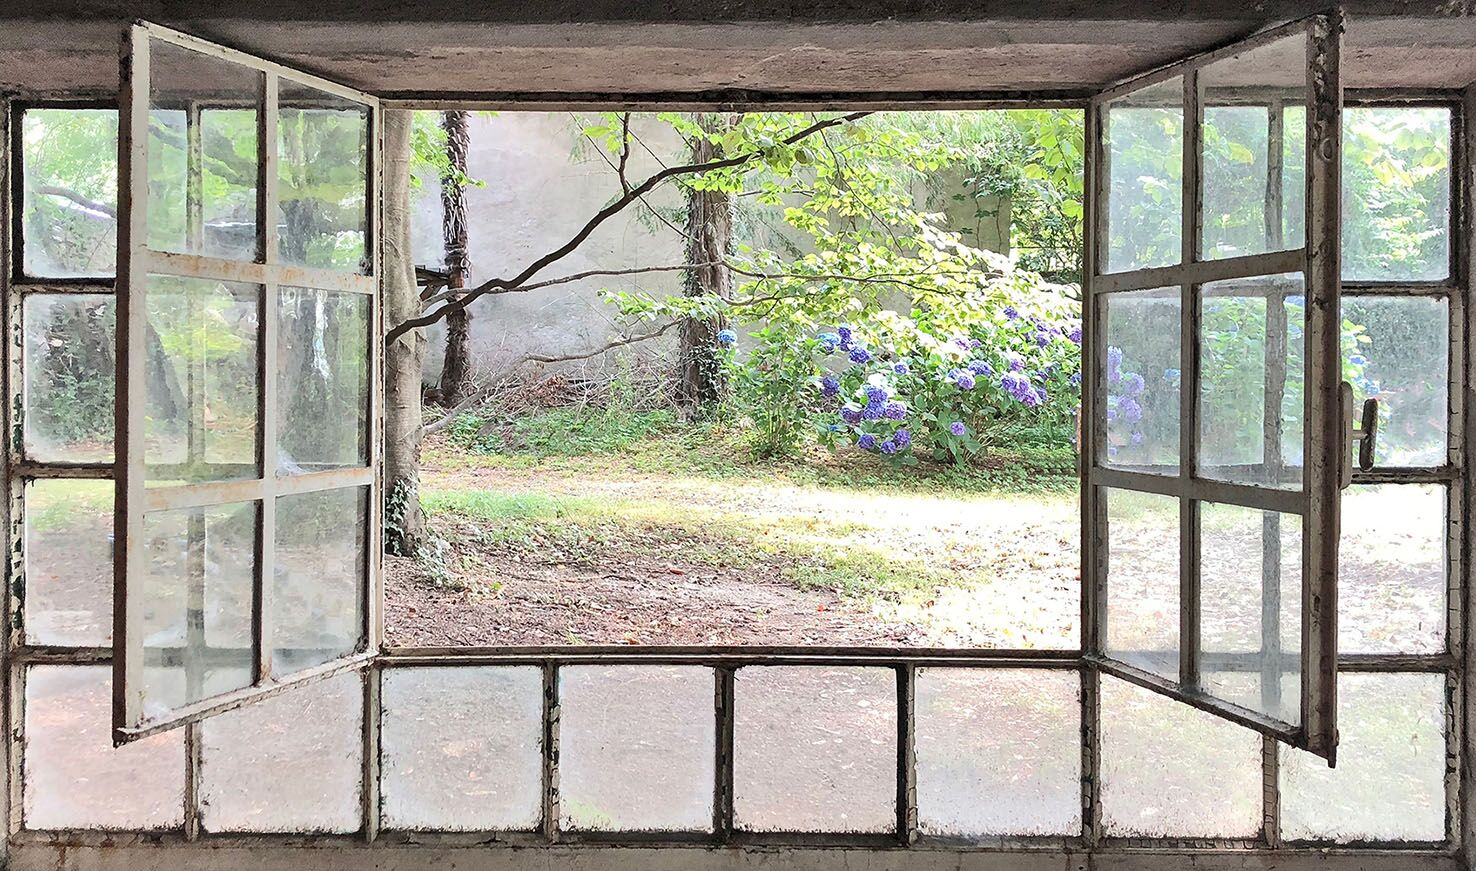 Vera Rossi,FINESTRA APERTA - Through the Window,2018,Stampa su plexiglass,cm 75x127,edition: Tiratura di 7,Courtesy Antonia Jannone Disegni di Architettura